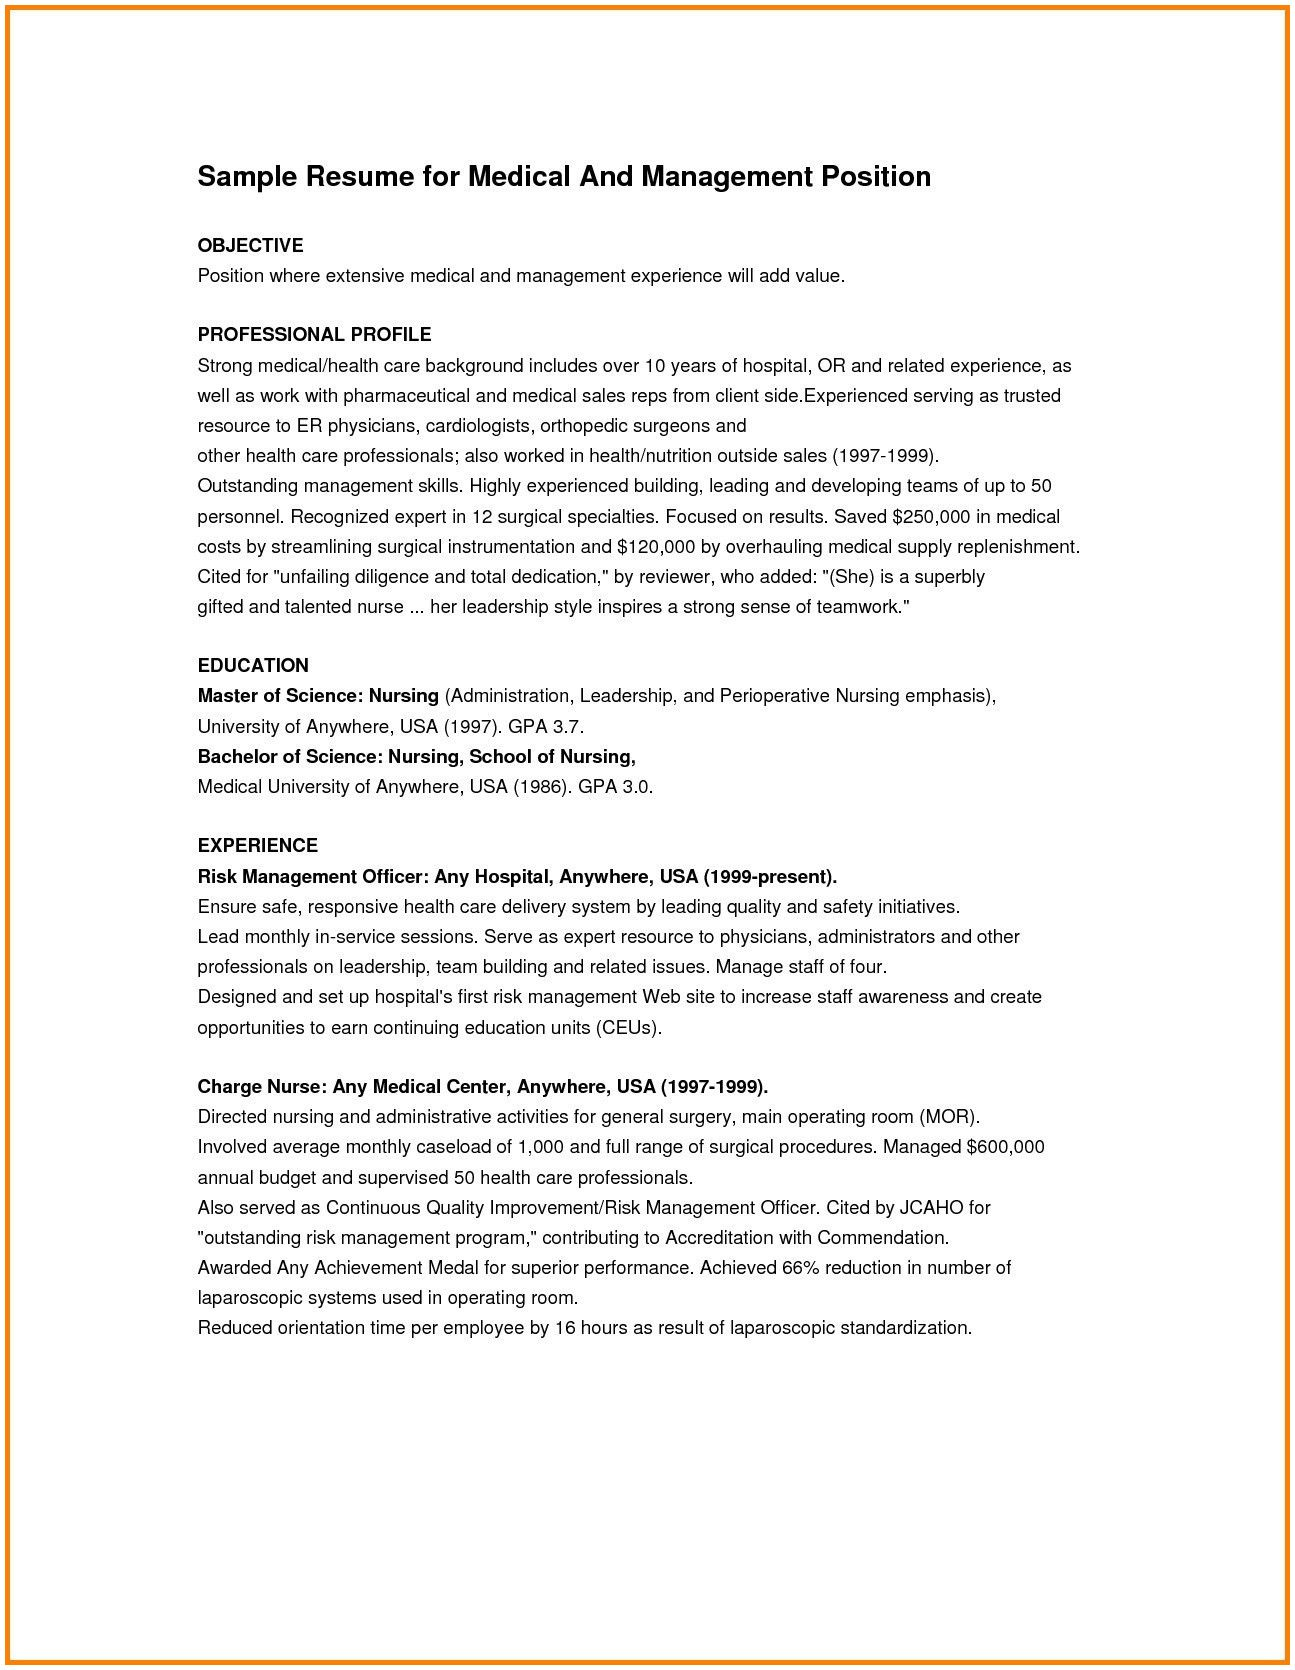 Resume Examples Small Business Owner New Healthcare Resume Examples Awesome Resume Examples 0d Skills Resume